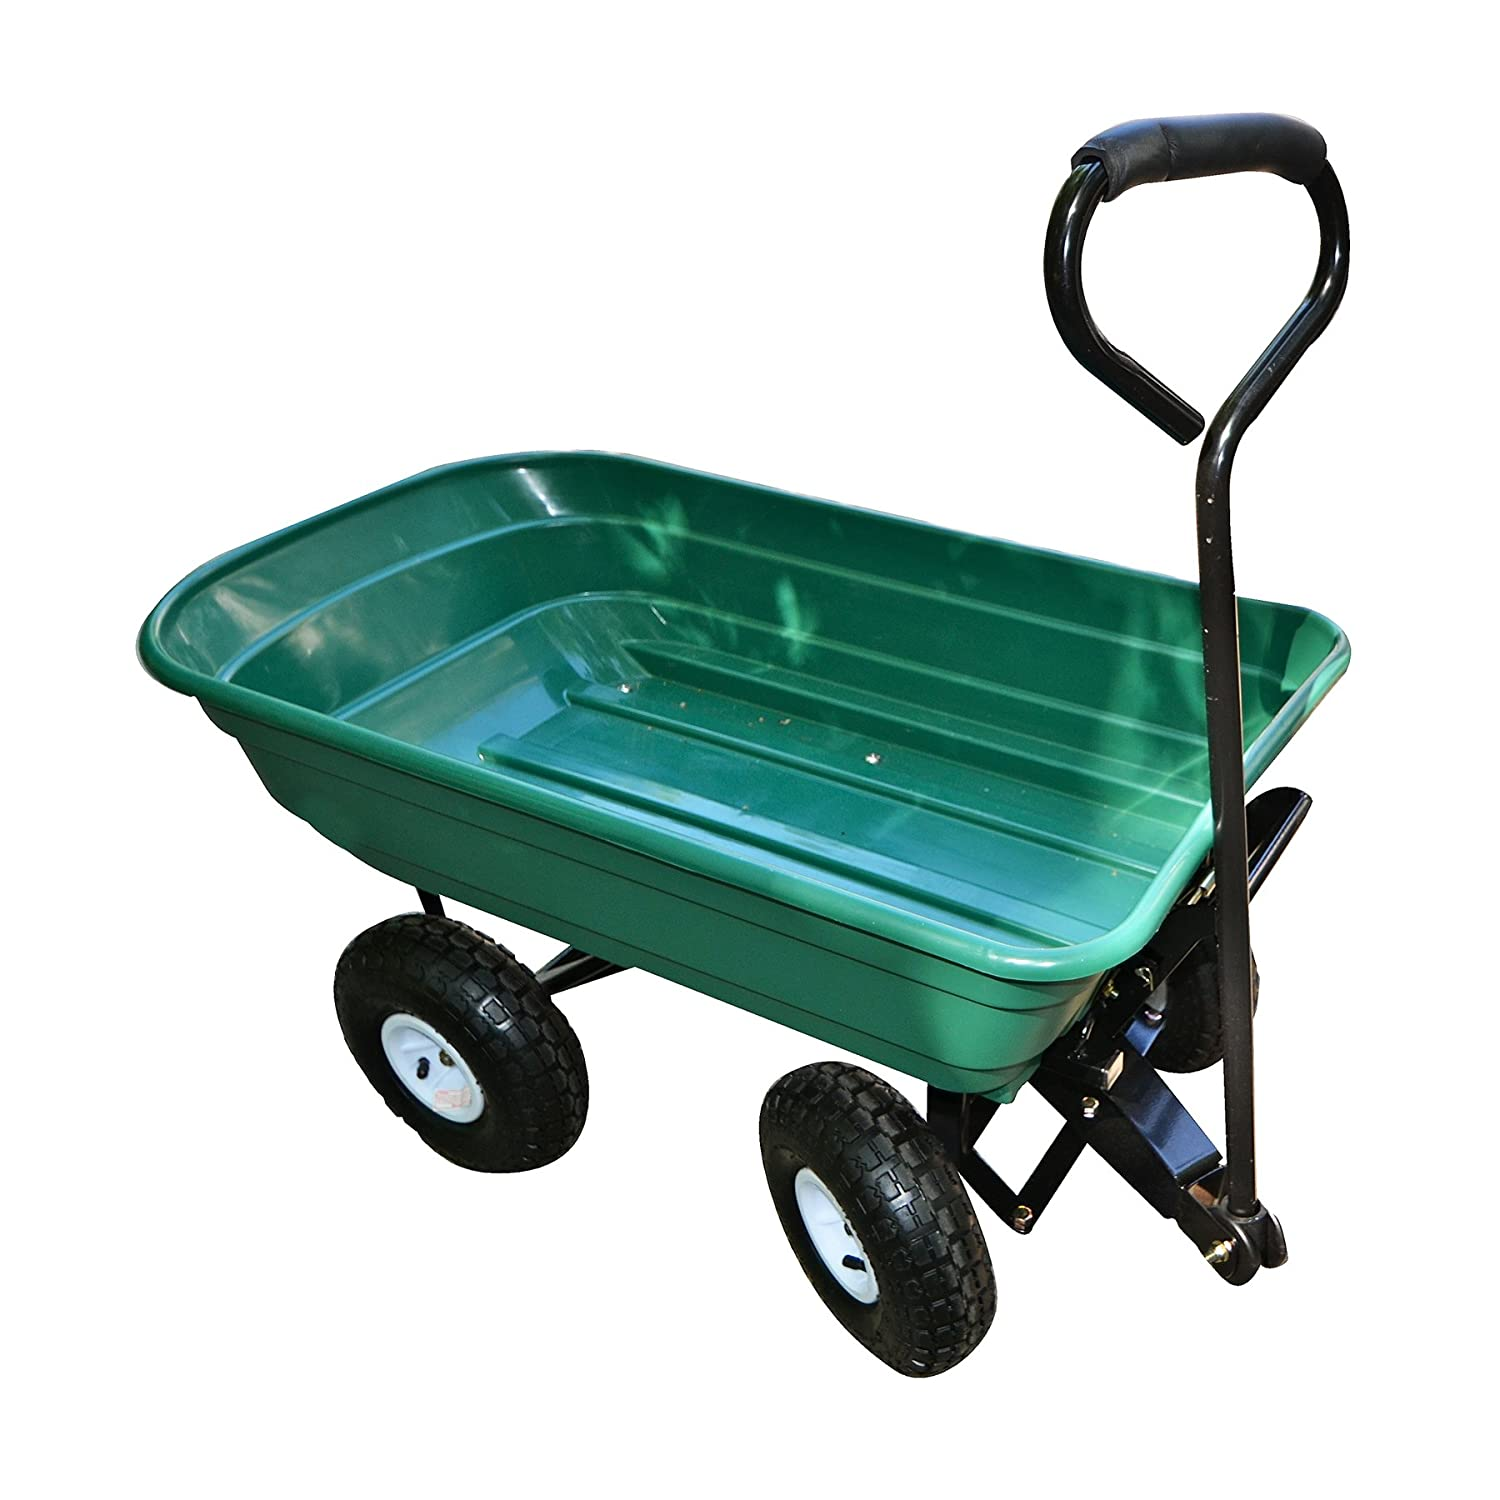 Precision LC2000 Capacity Mighty Garden Yard Cart, 600-Pound